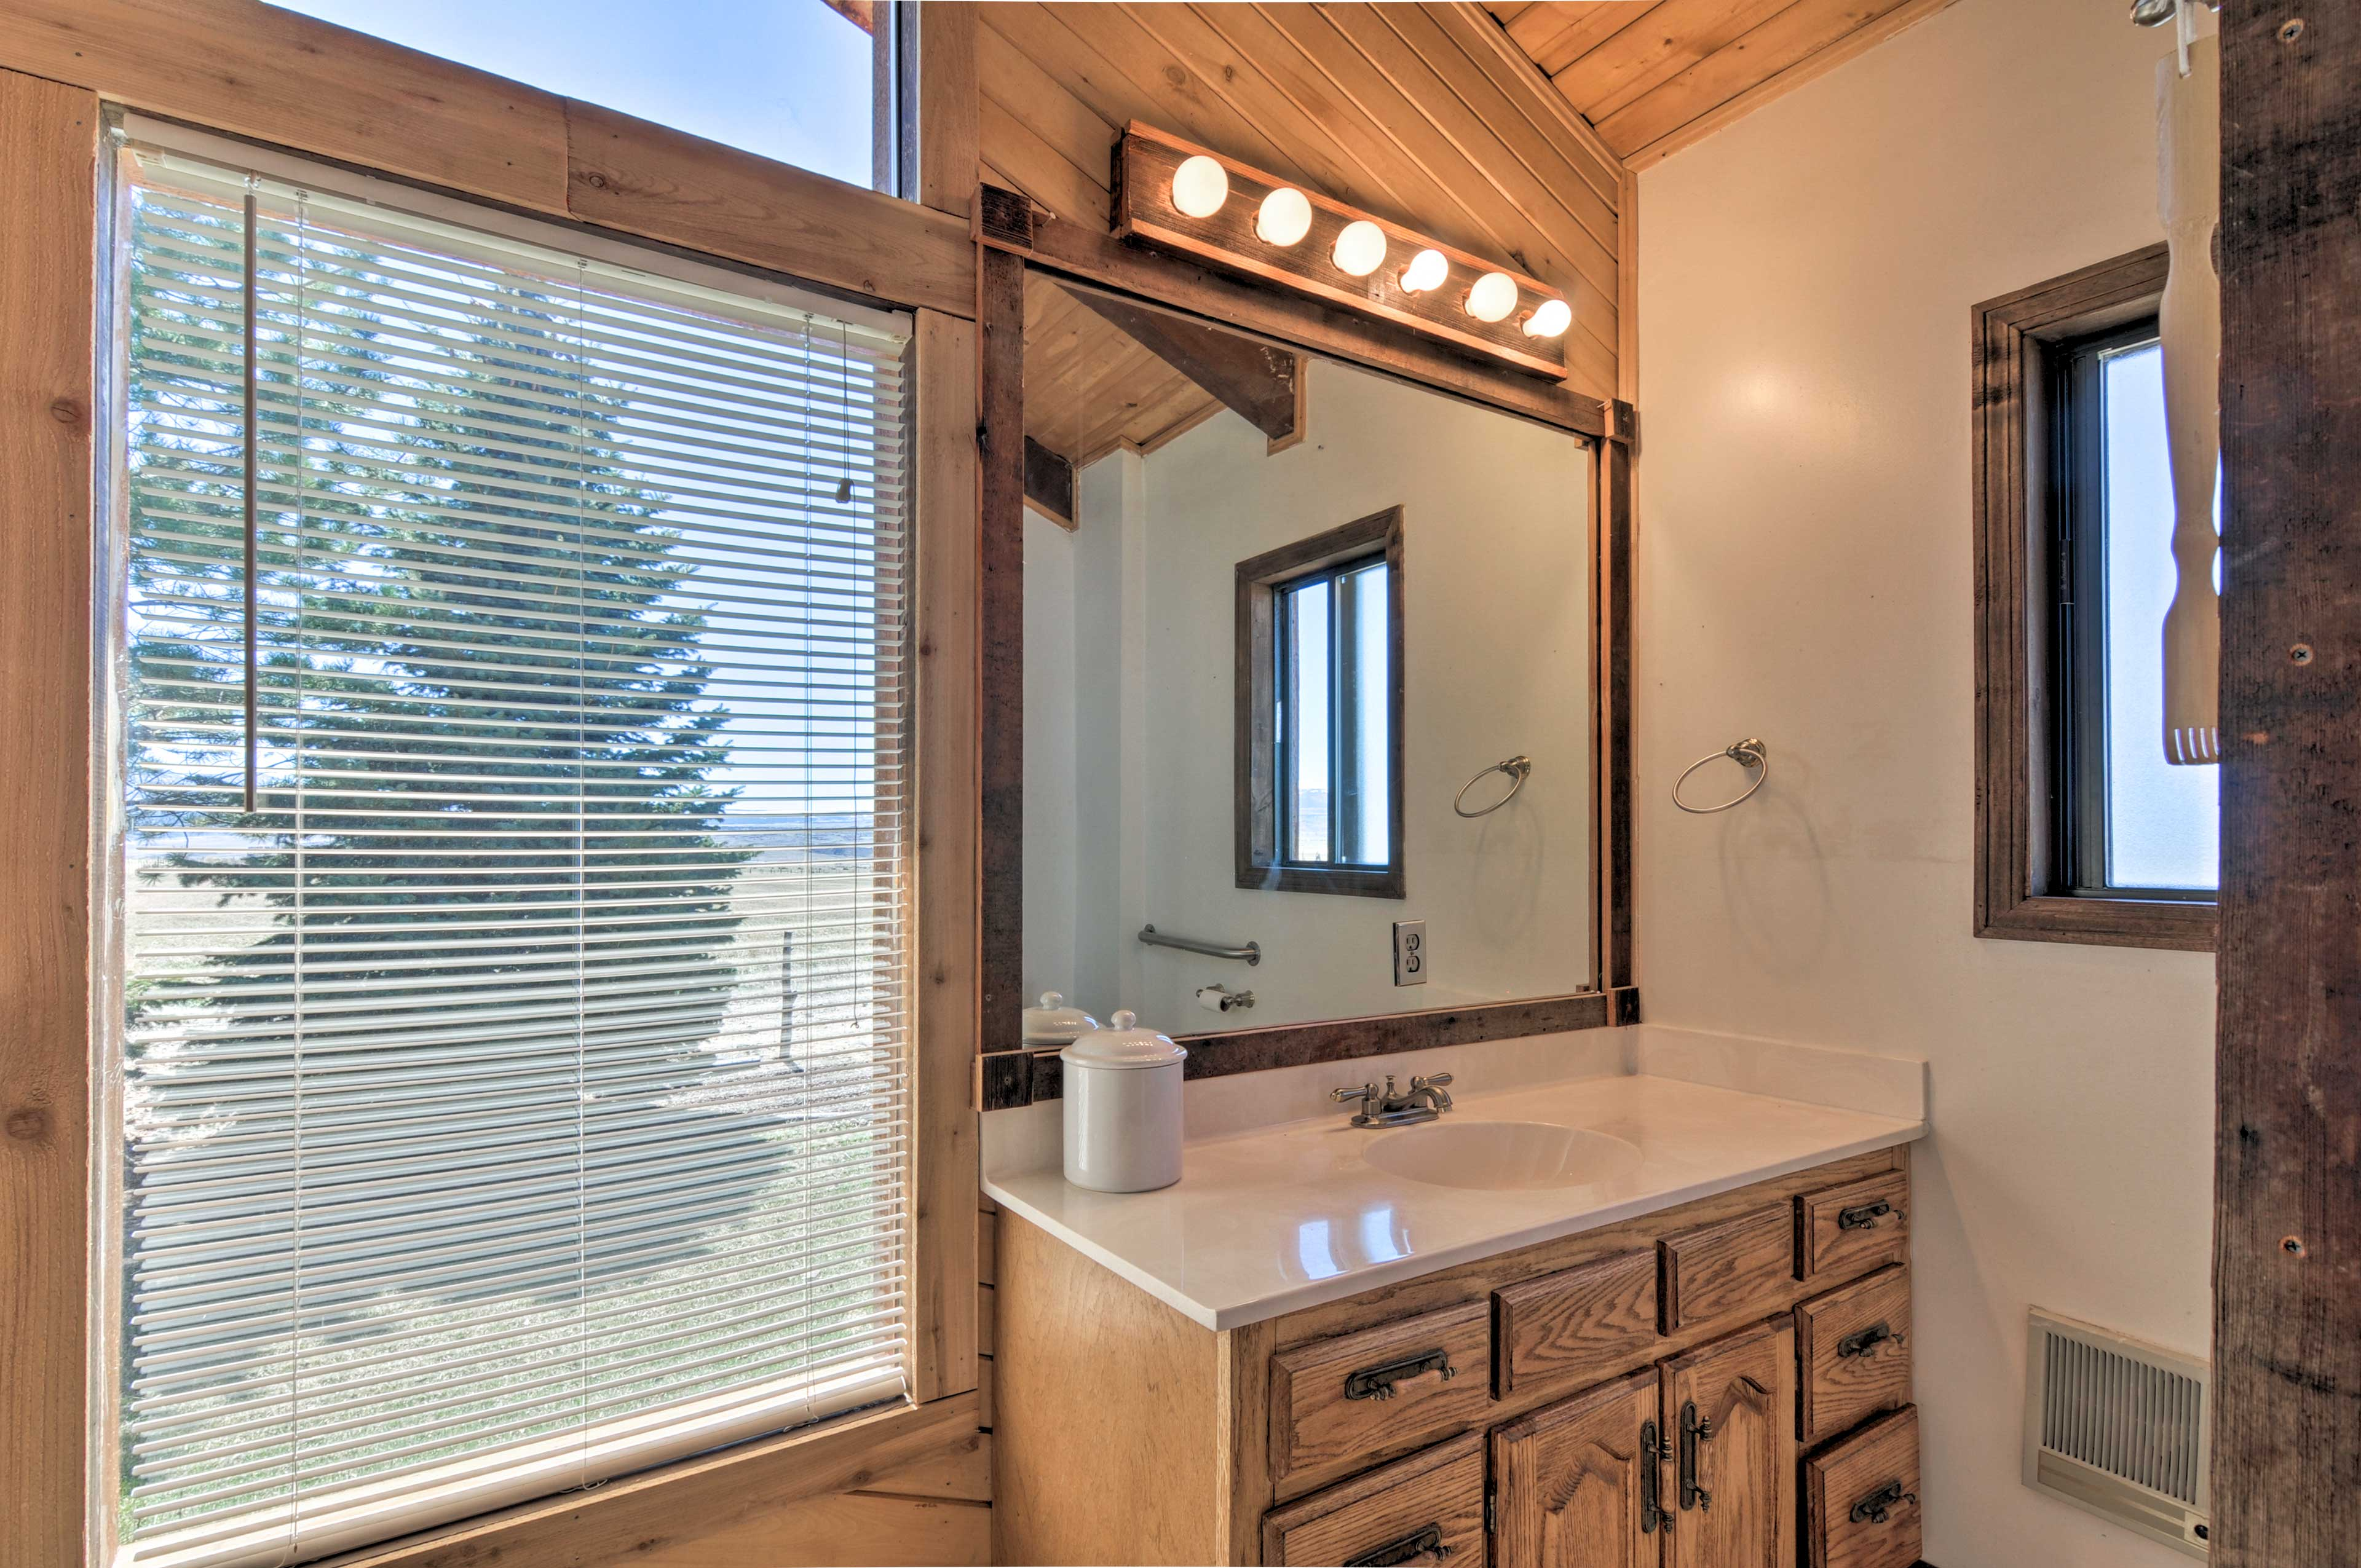 The master bedroom also offers an en-suite bath.